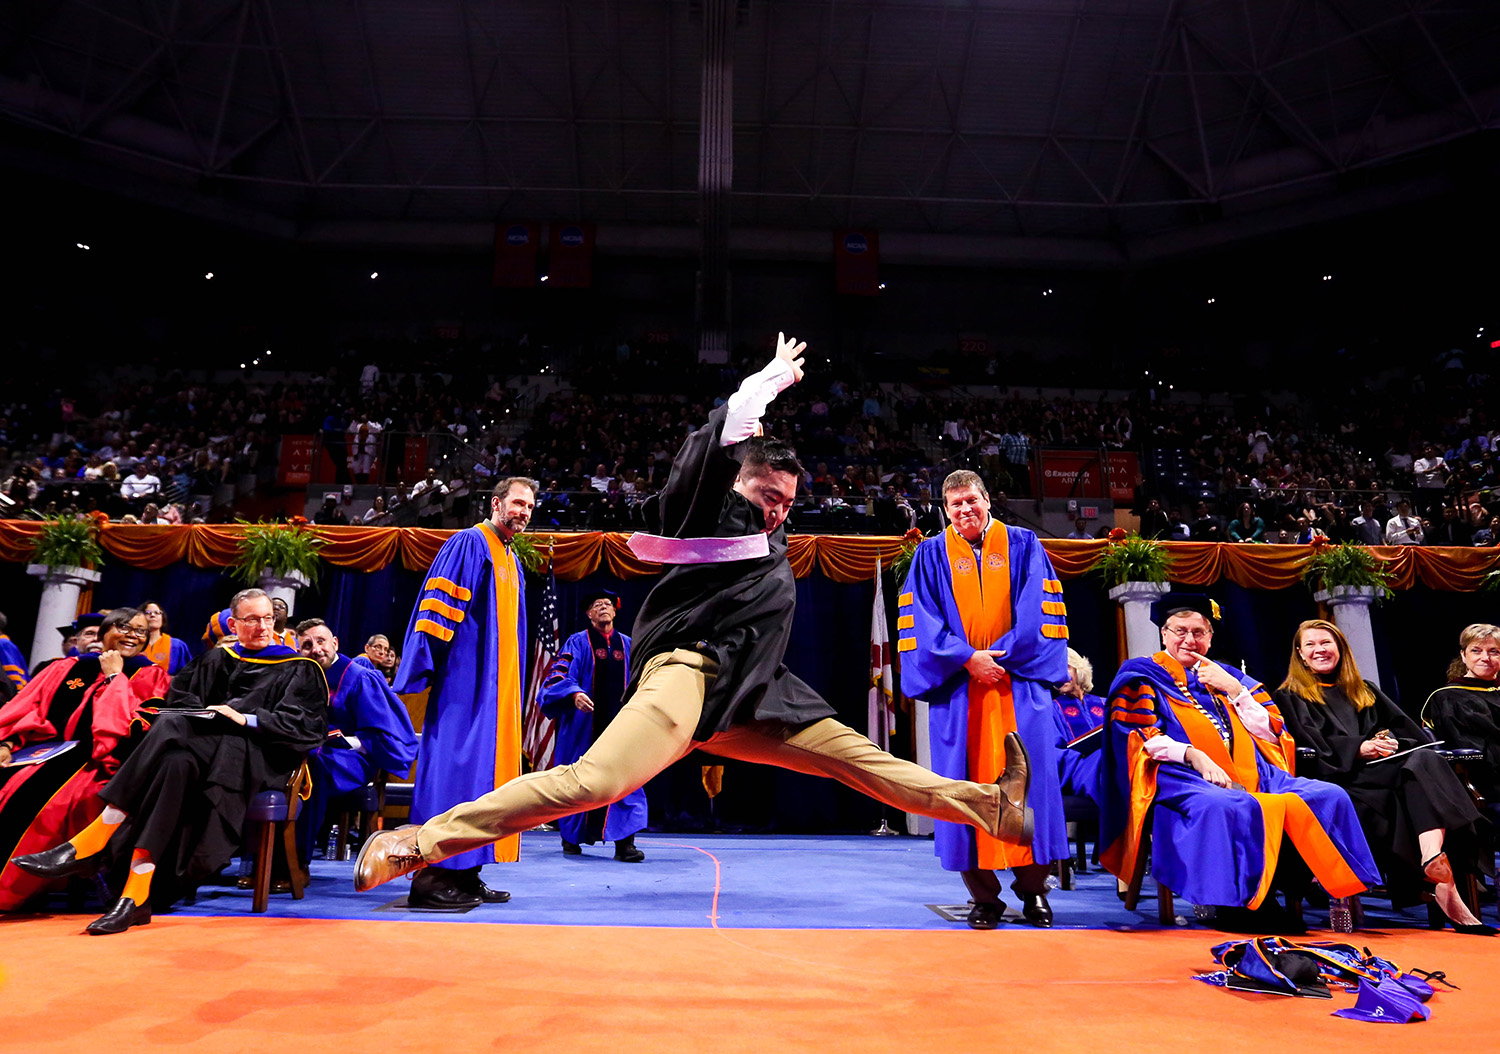 Images from the University of Florida Graduation ceremony on Saturday, Dec. 16, 2017 in Gainesville, Fla. (Photo by Matt Stamey)